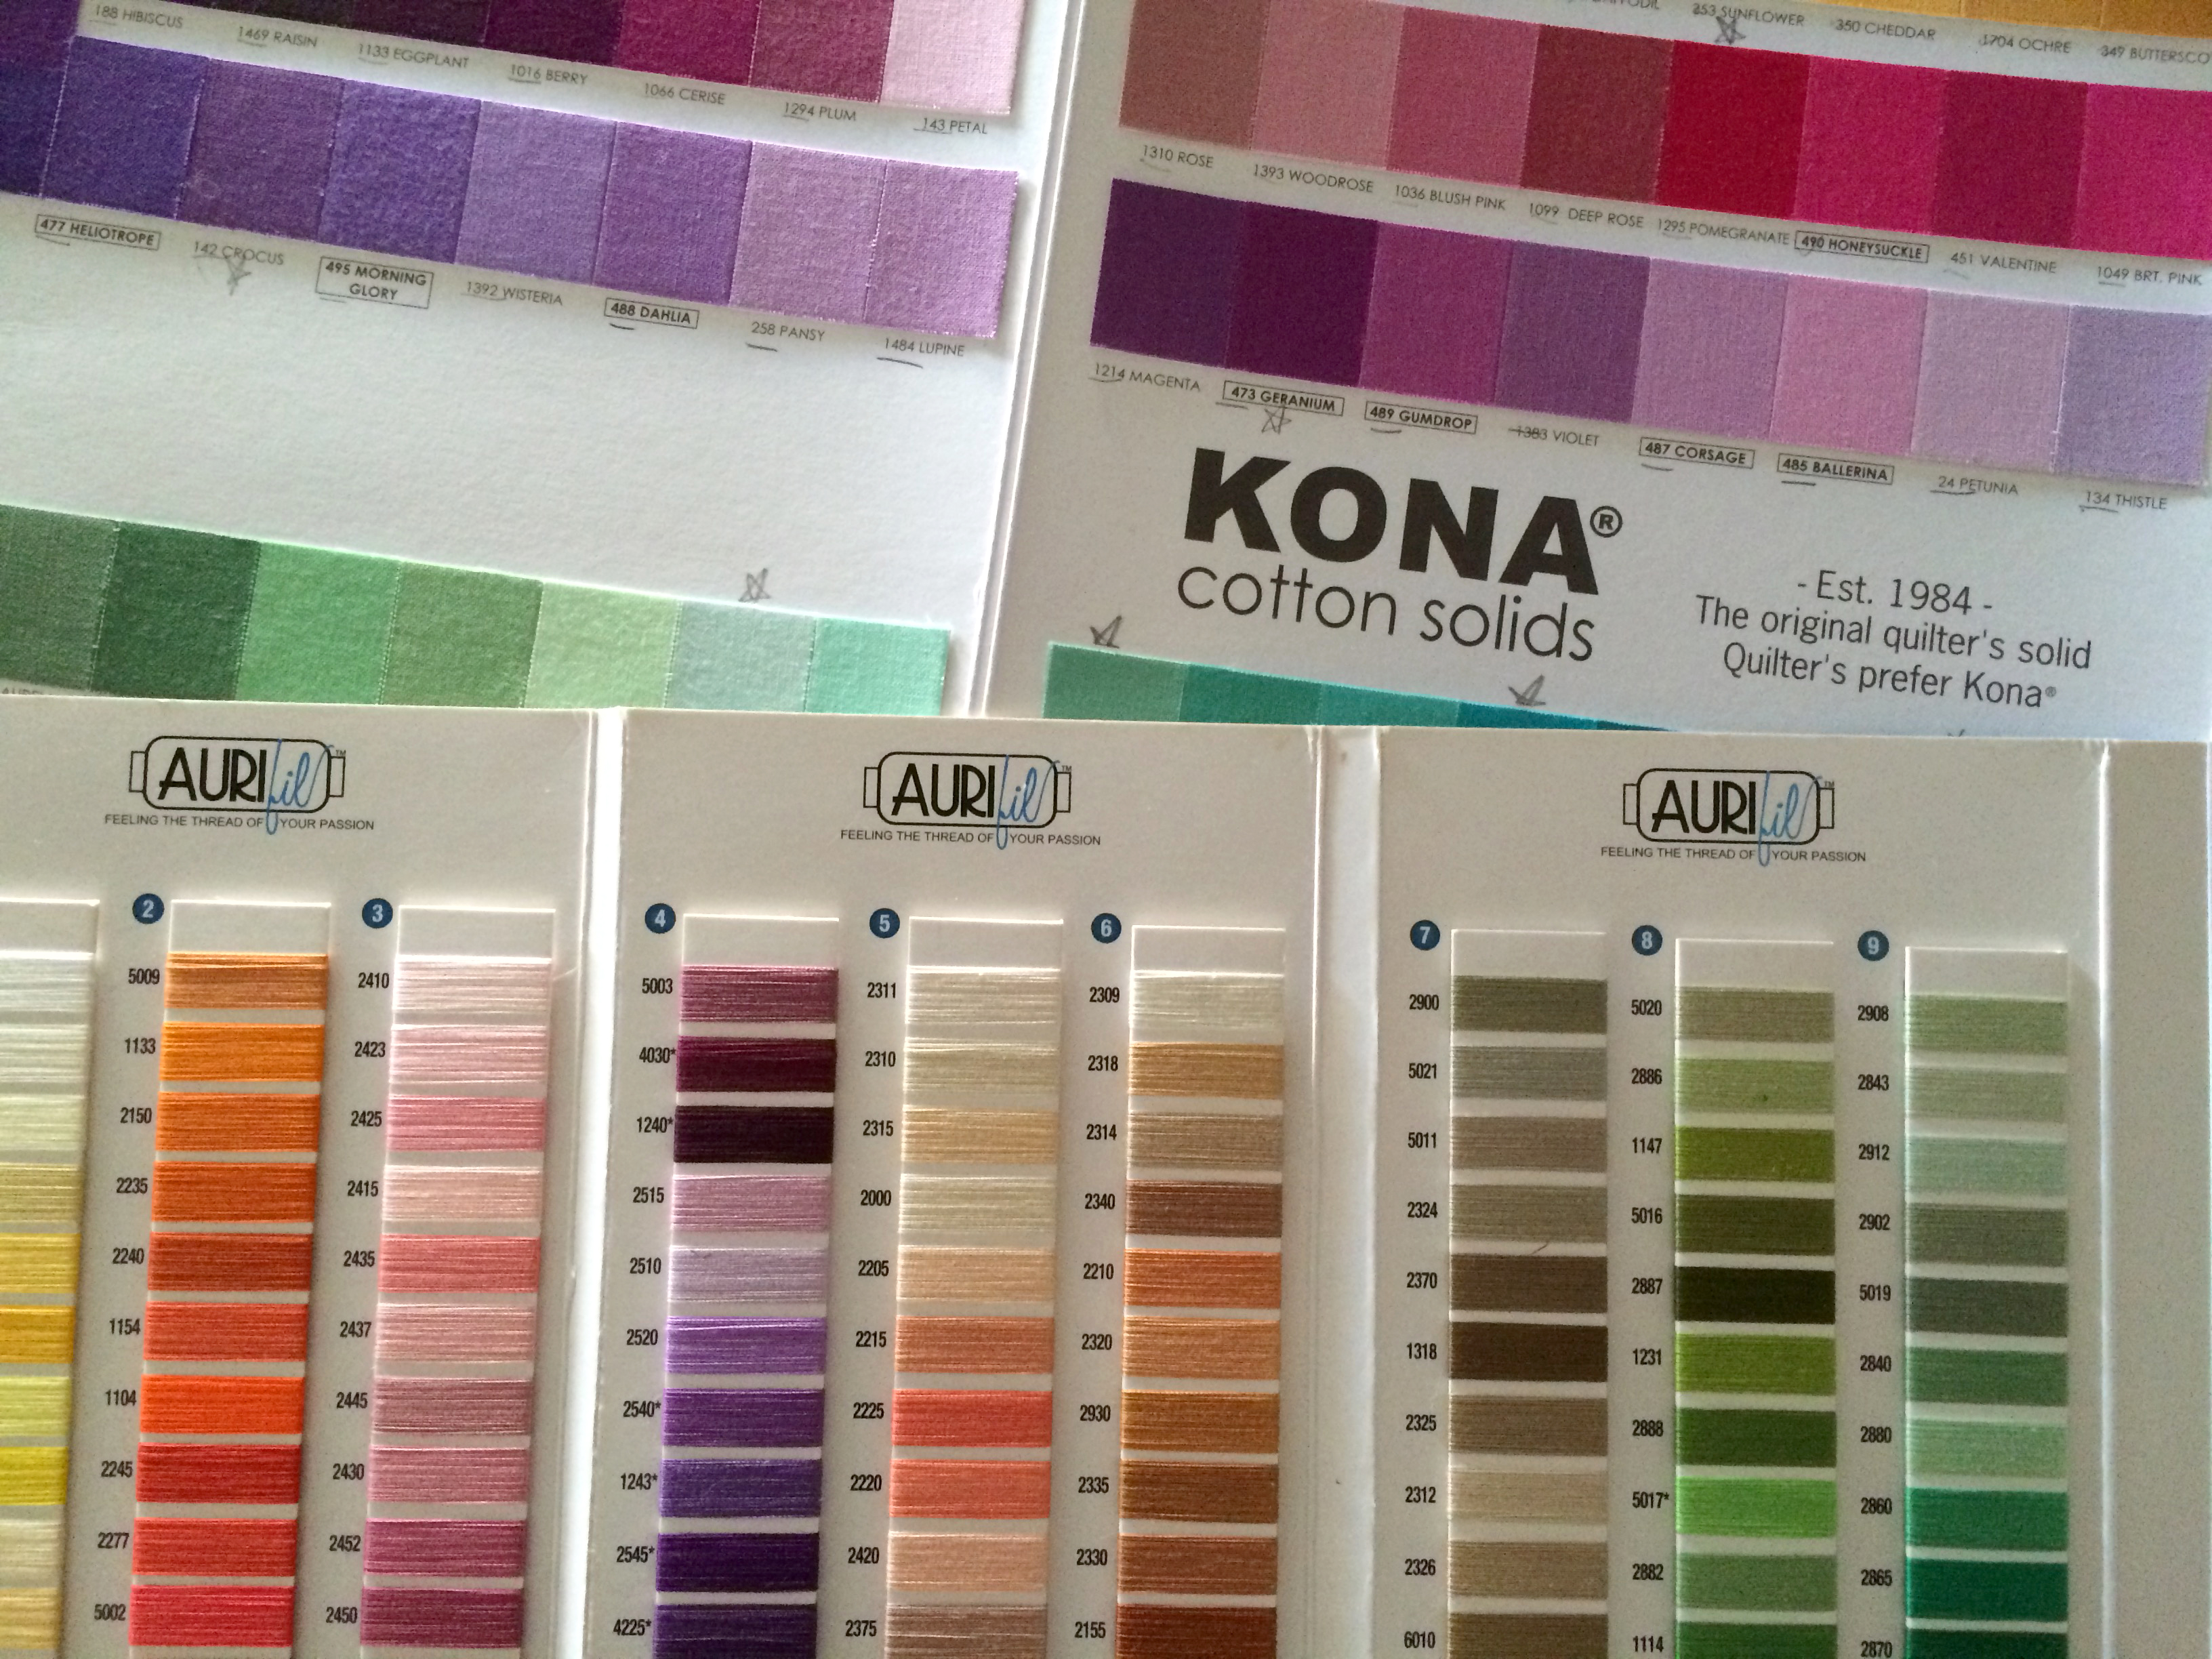 Kona cotton to aurifil thread conversion chart updated pile o kona to aurifil thread conversion nvjuhfo Images